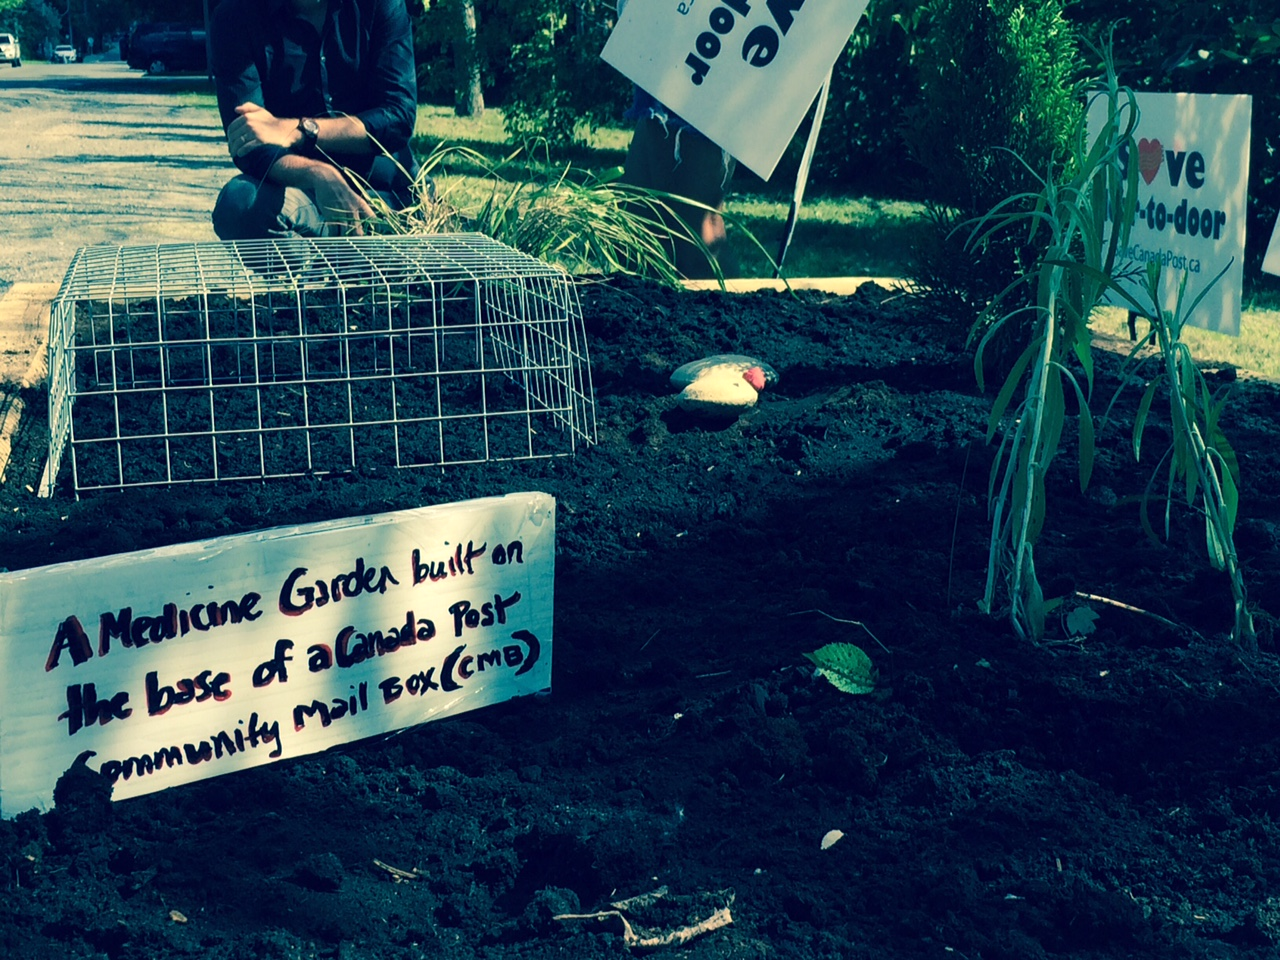 A resident in Ottawa, with the help of nearby CUPW members, started a full-time occupation of a CMB pad a few weeks ago. The occupation transformed in to a garden-building task force, and a medicine garden now grows on the site.